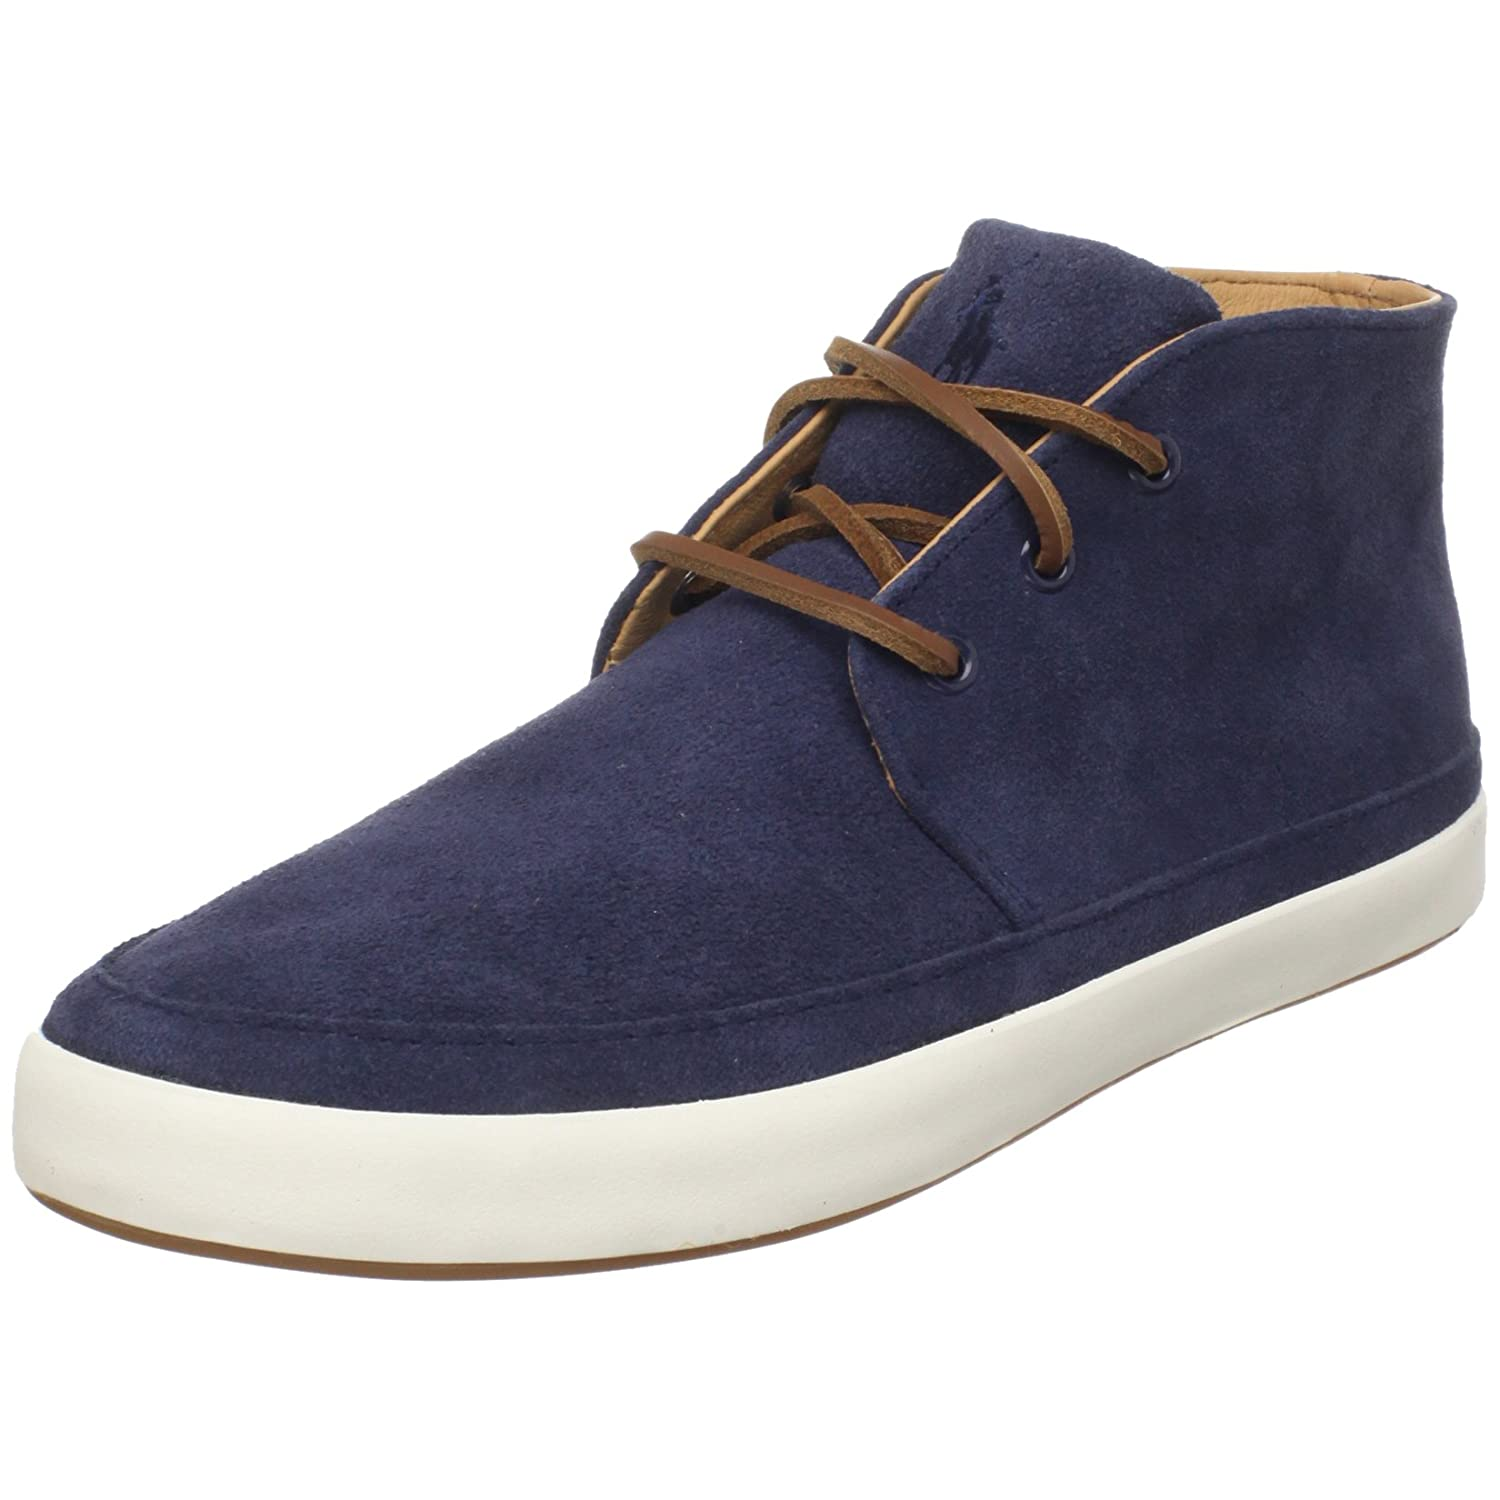 $47Polo Ralph Lauren Men's Erwin Leather Sneaker (Navy)